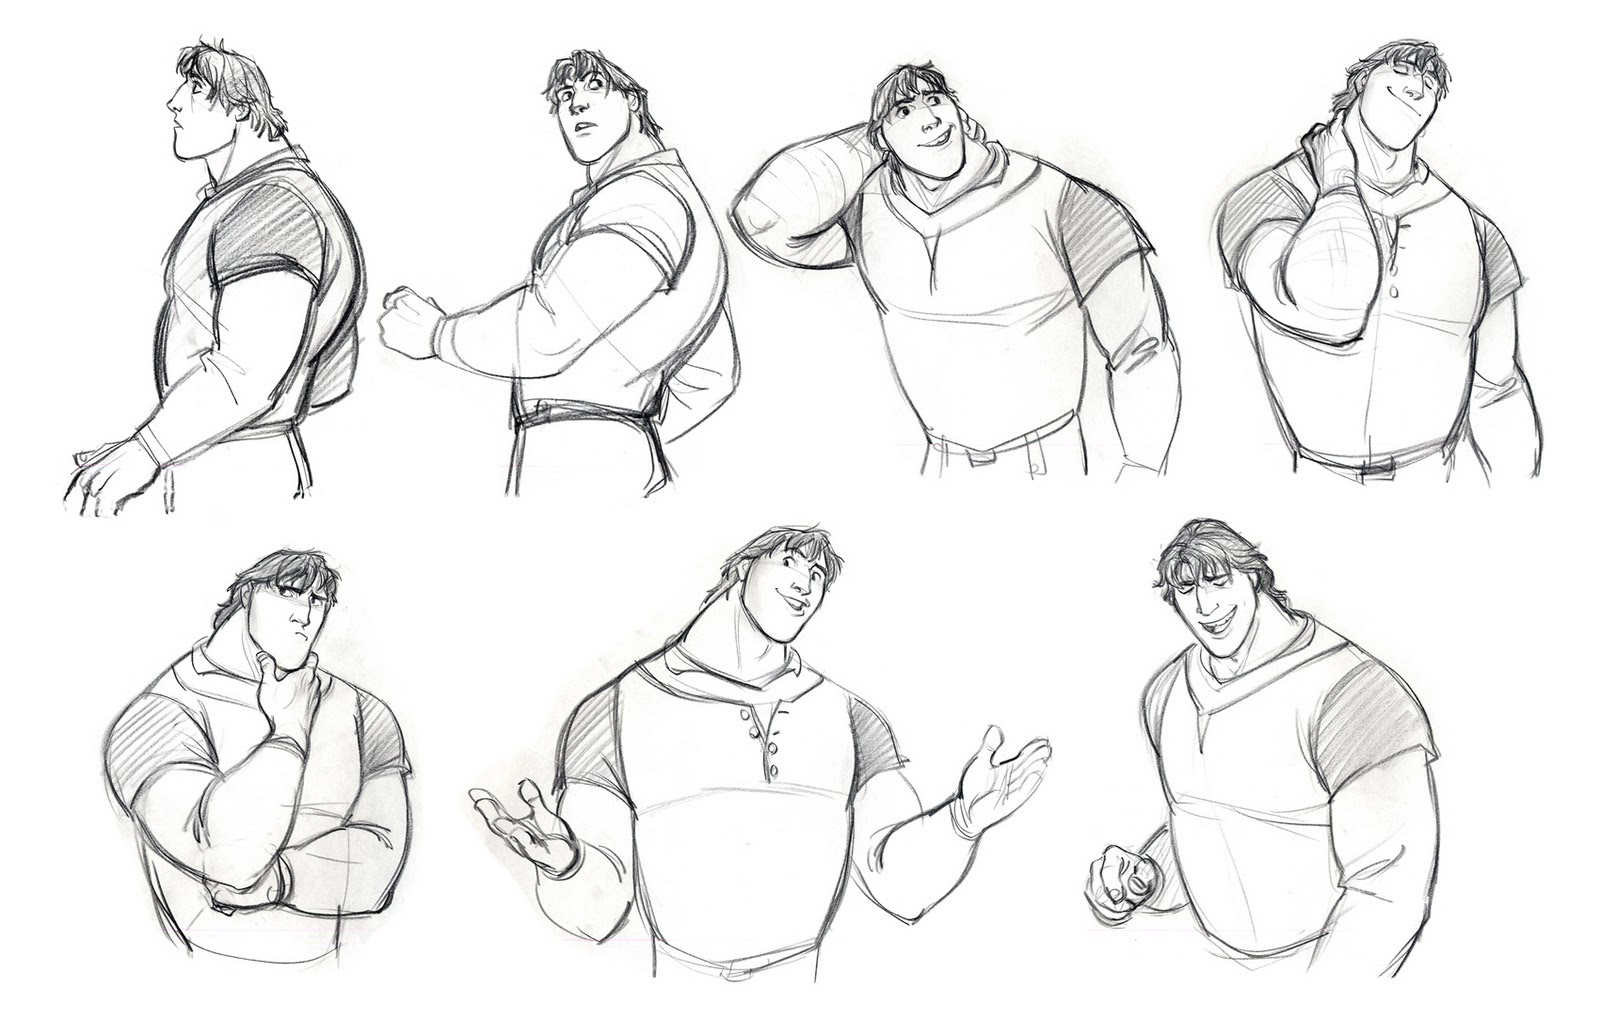 Character Design And Concept Art : Living lines library tangled character flynn ryder